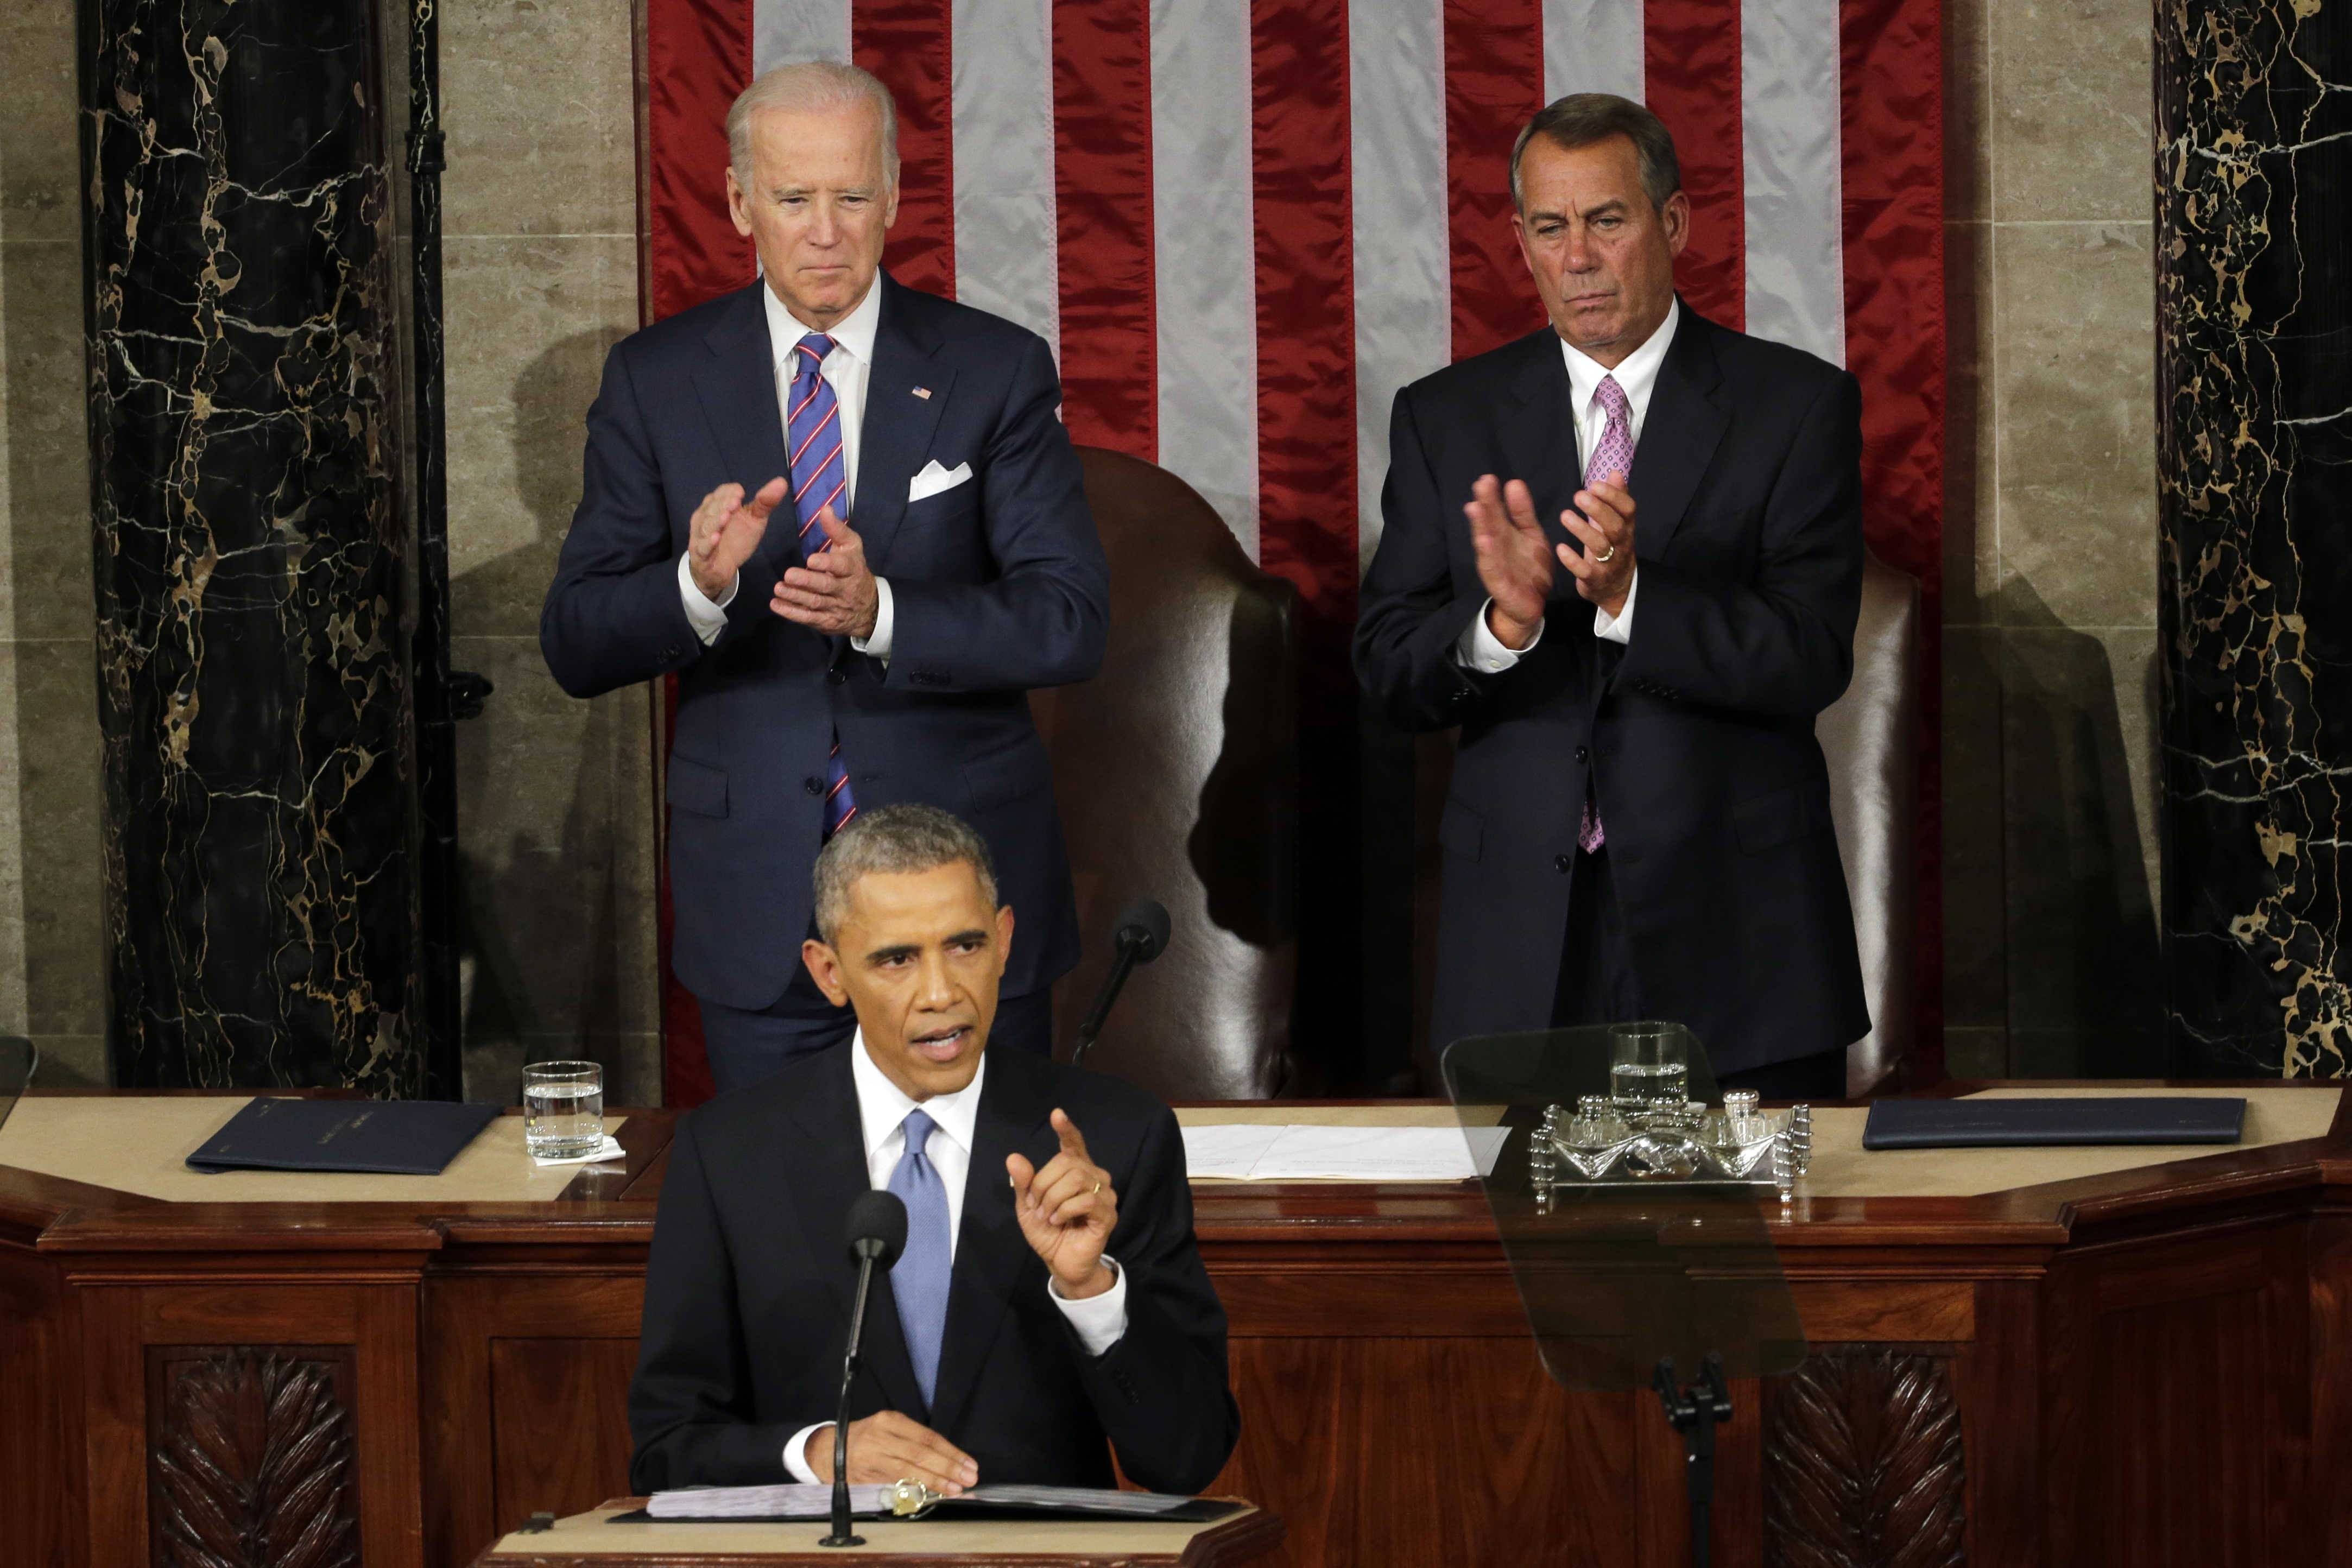 Obama State Of The Union 2015 Essay - image 8